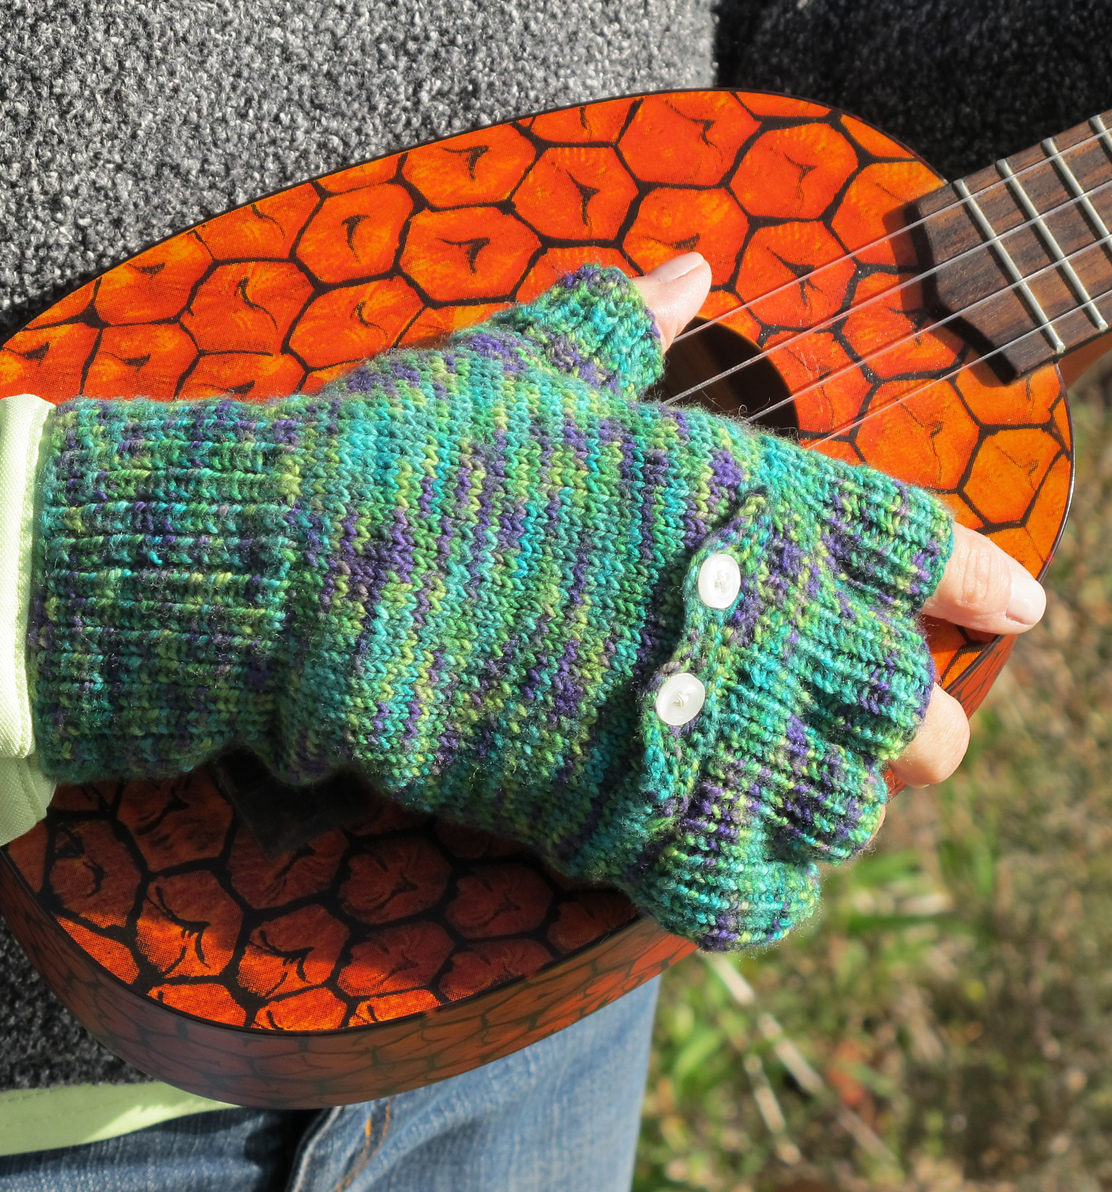 Knitting Pattern for Fingerless Gloves With Pockets